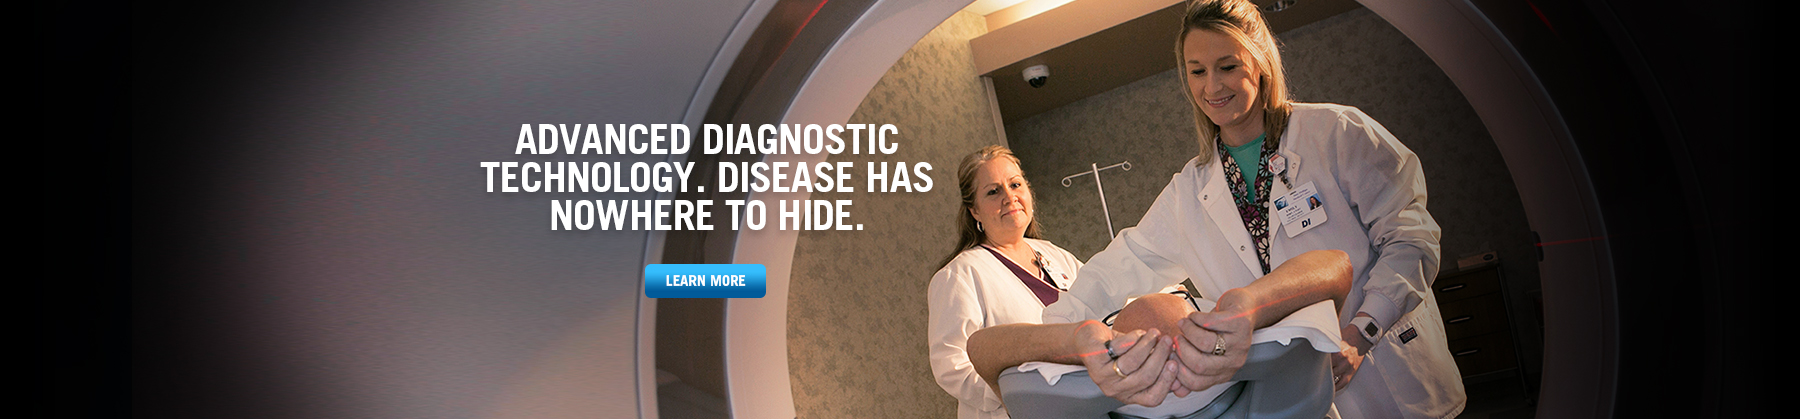 Advanced Diagnostic Technology. Disease Has Nowhere to Hide.